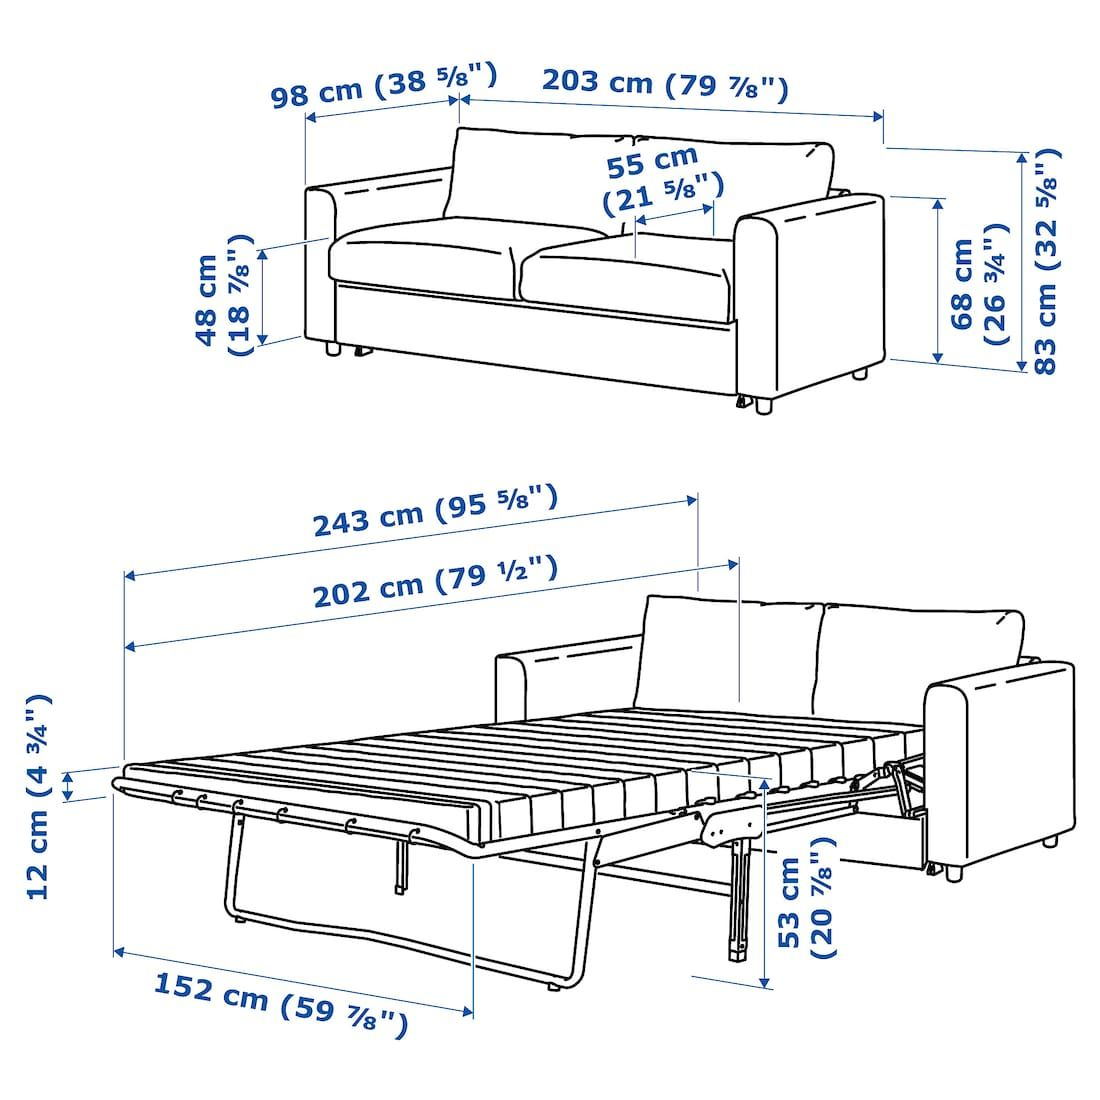 Pin By Carrie Briggs On Sofa Bed In 2020 Sofa Bed Diy Sofa Bed Sofa Bed Frame